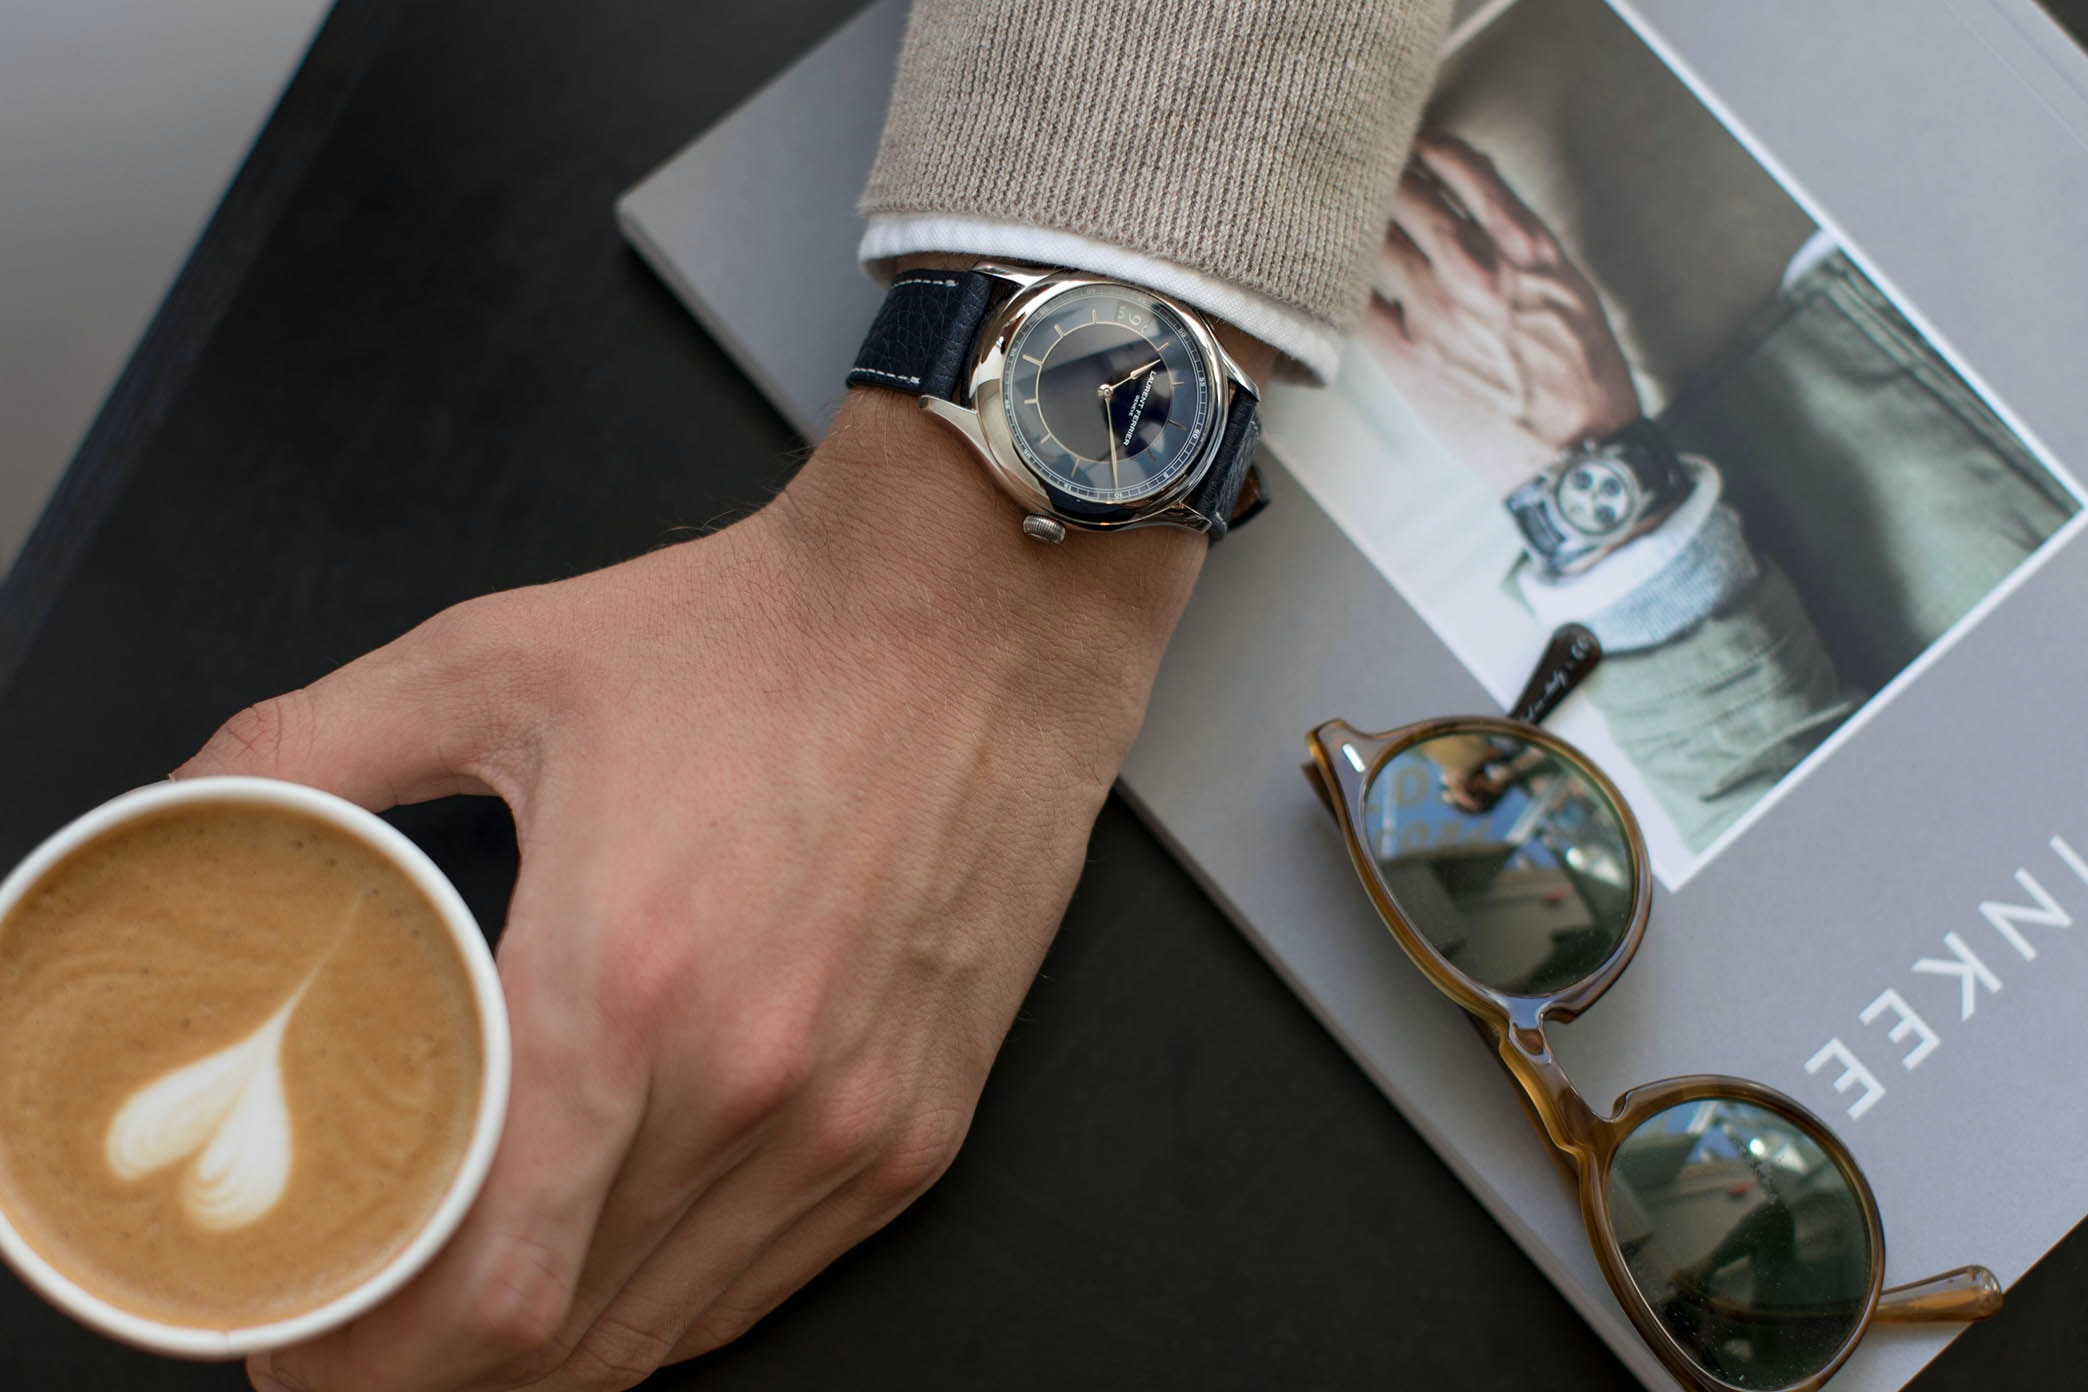 In The Shop: Introducing The Laurent Ferrier Traveller Limited Edition For HODINKEE In The Shop: Introducing The Laurent Ferrier Traveller Limited Edition For HODINKEE hodinkee 057